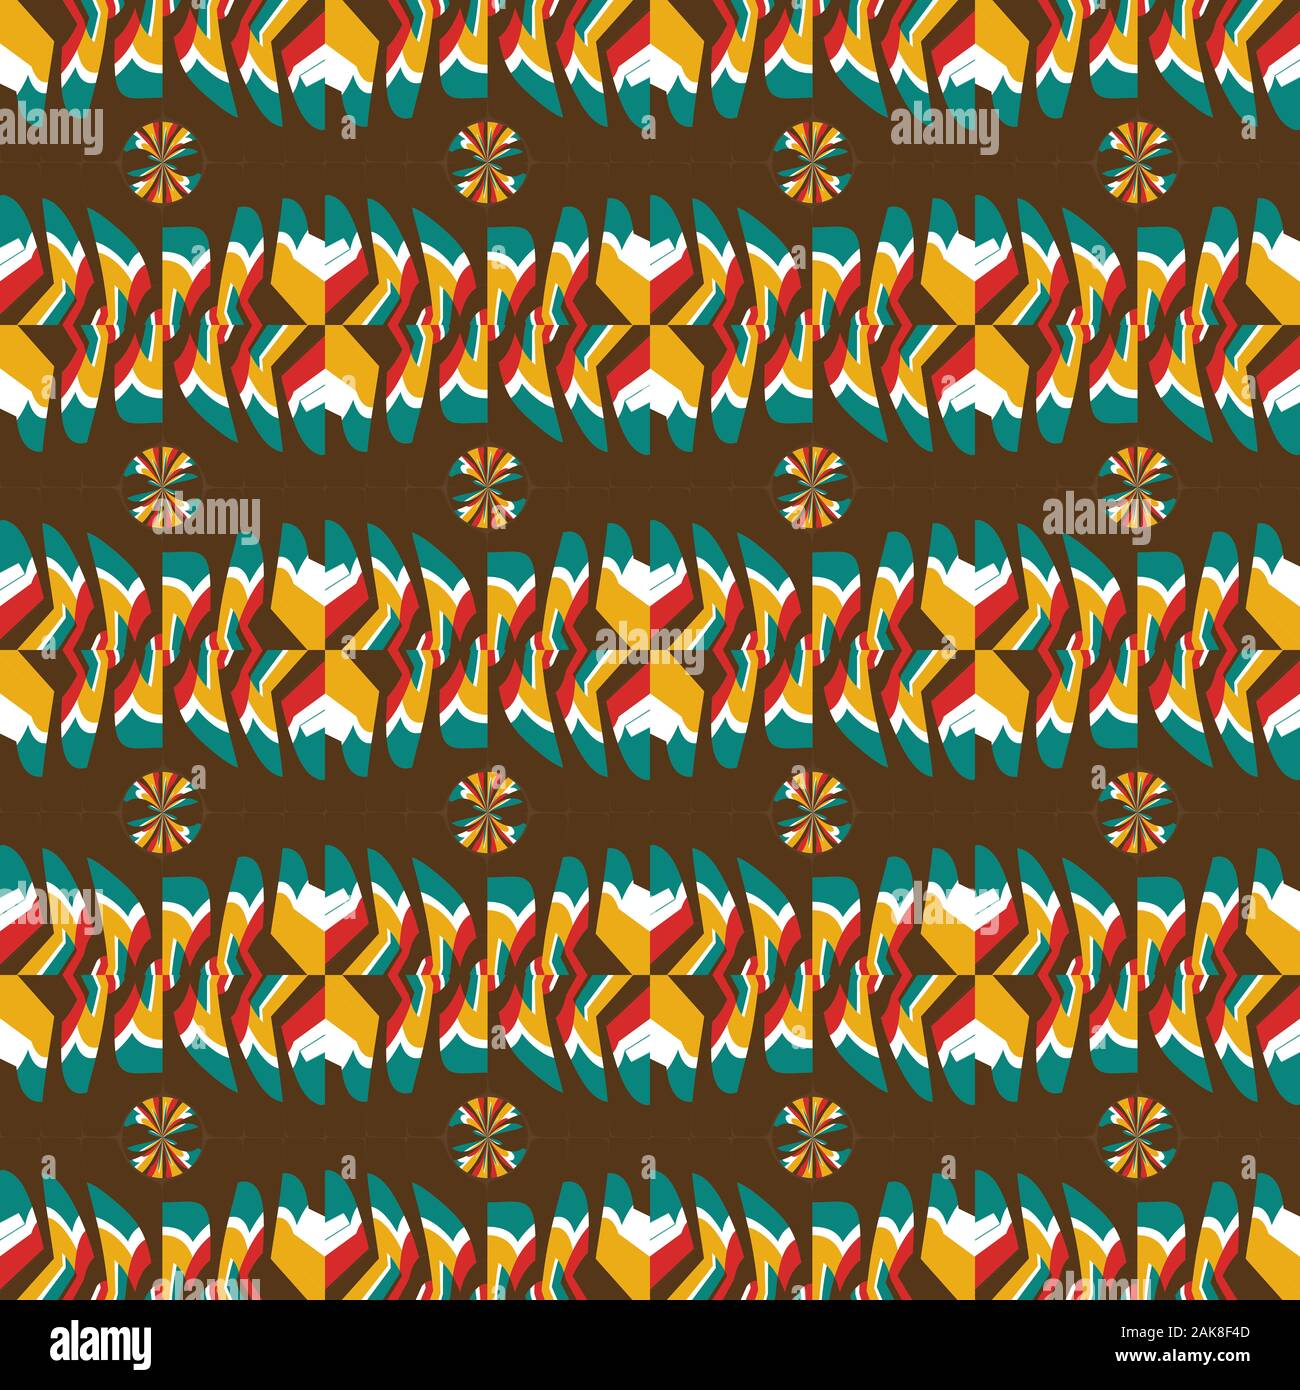 Geometric pattern with colorful abstract shapes. Stock Photo